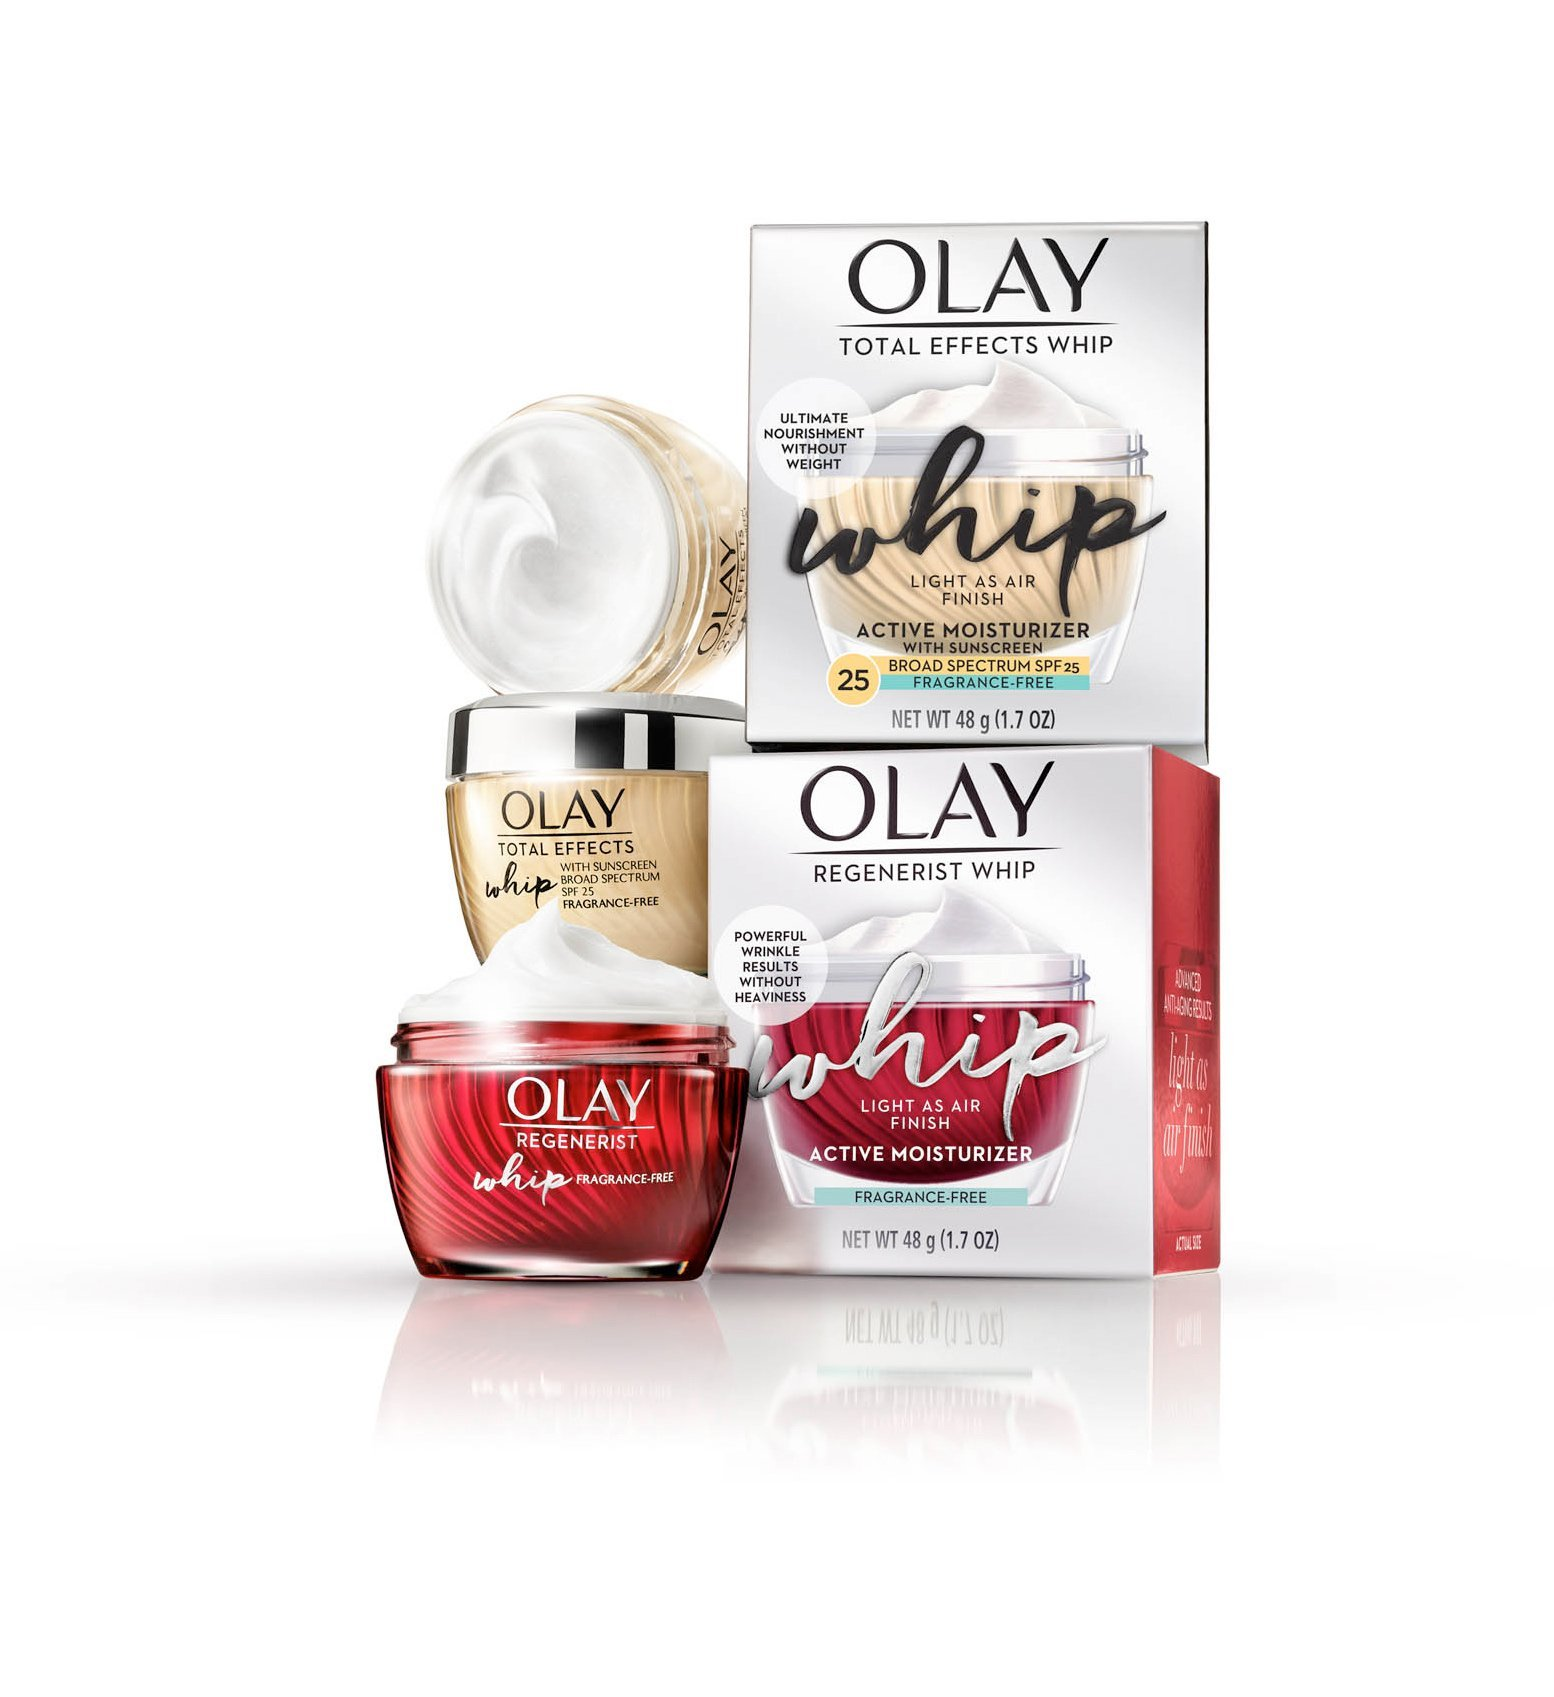 A set of Olay whips with beautiful designs - Cosmetics photography